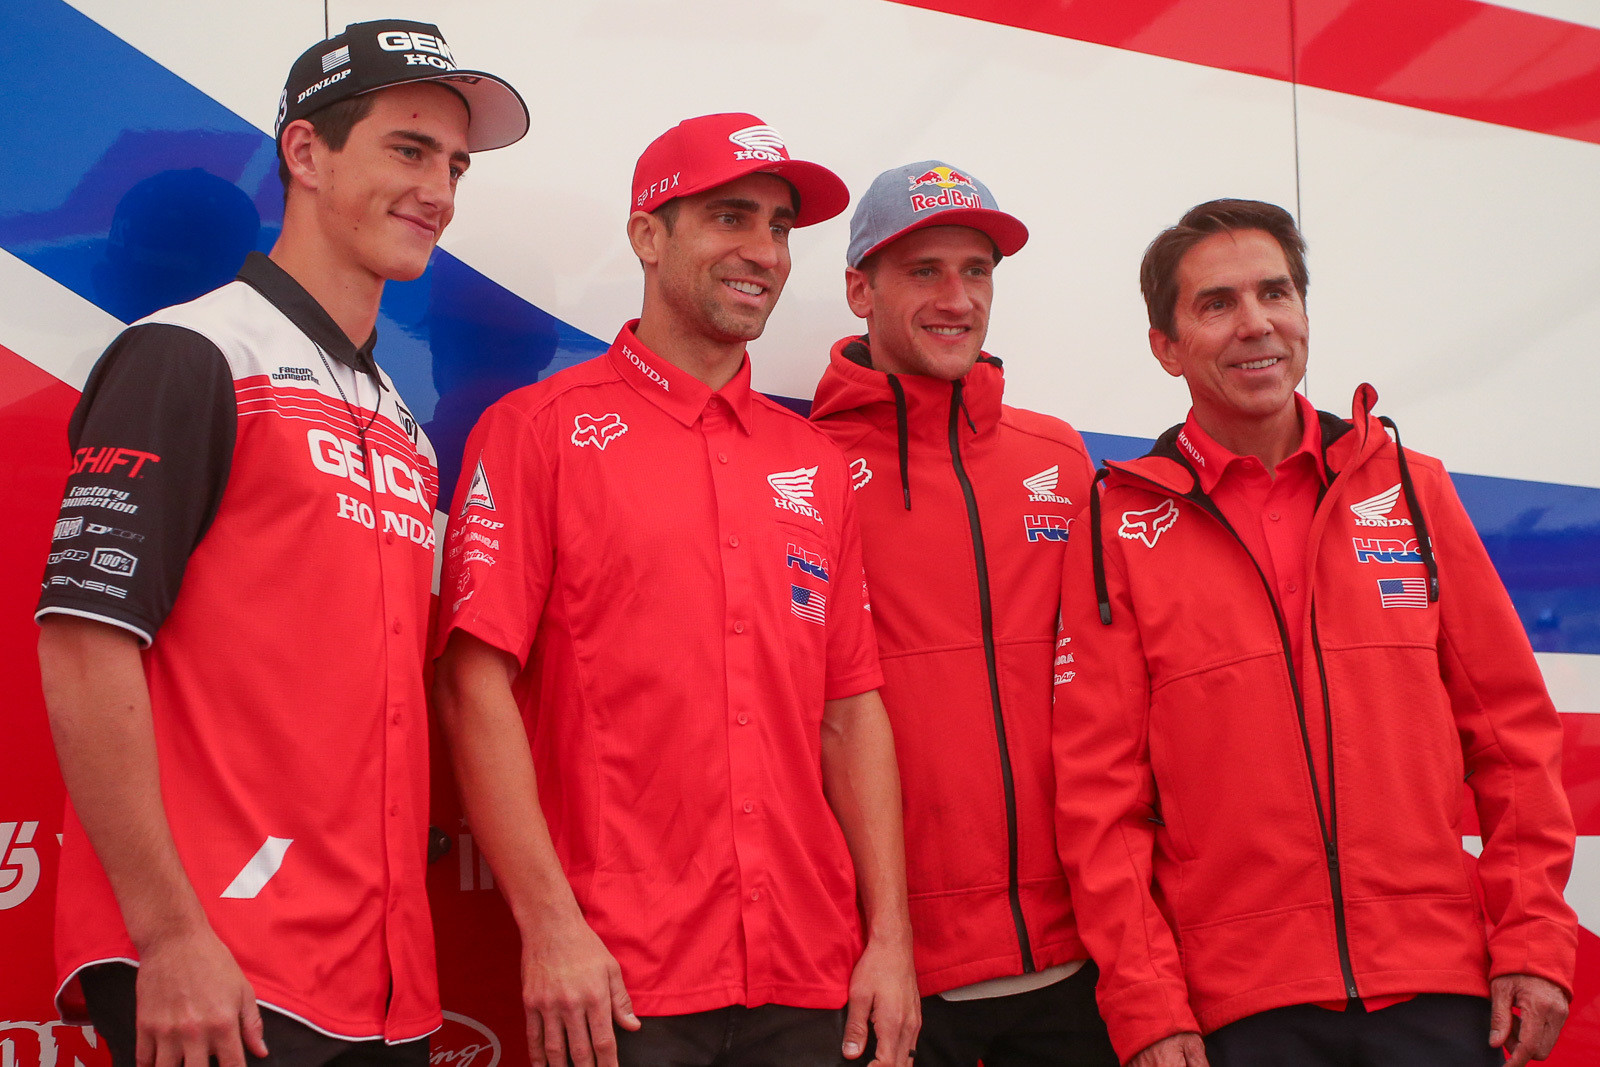 Team Honda HRC got creative with their roster for 2020. Justin Brayton (fresh from wrapping up his fourth Australian Supercross title) will join Ken Roczen for the Supercross season. Chase Sexton gets one more Supercross season with GEICO Honda, and will likely ride some 450 races opposite whichever coast he ends up racing. He'll then move over to the Team Honda HRC team full-time during the outdoor season.